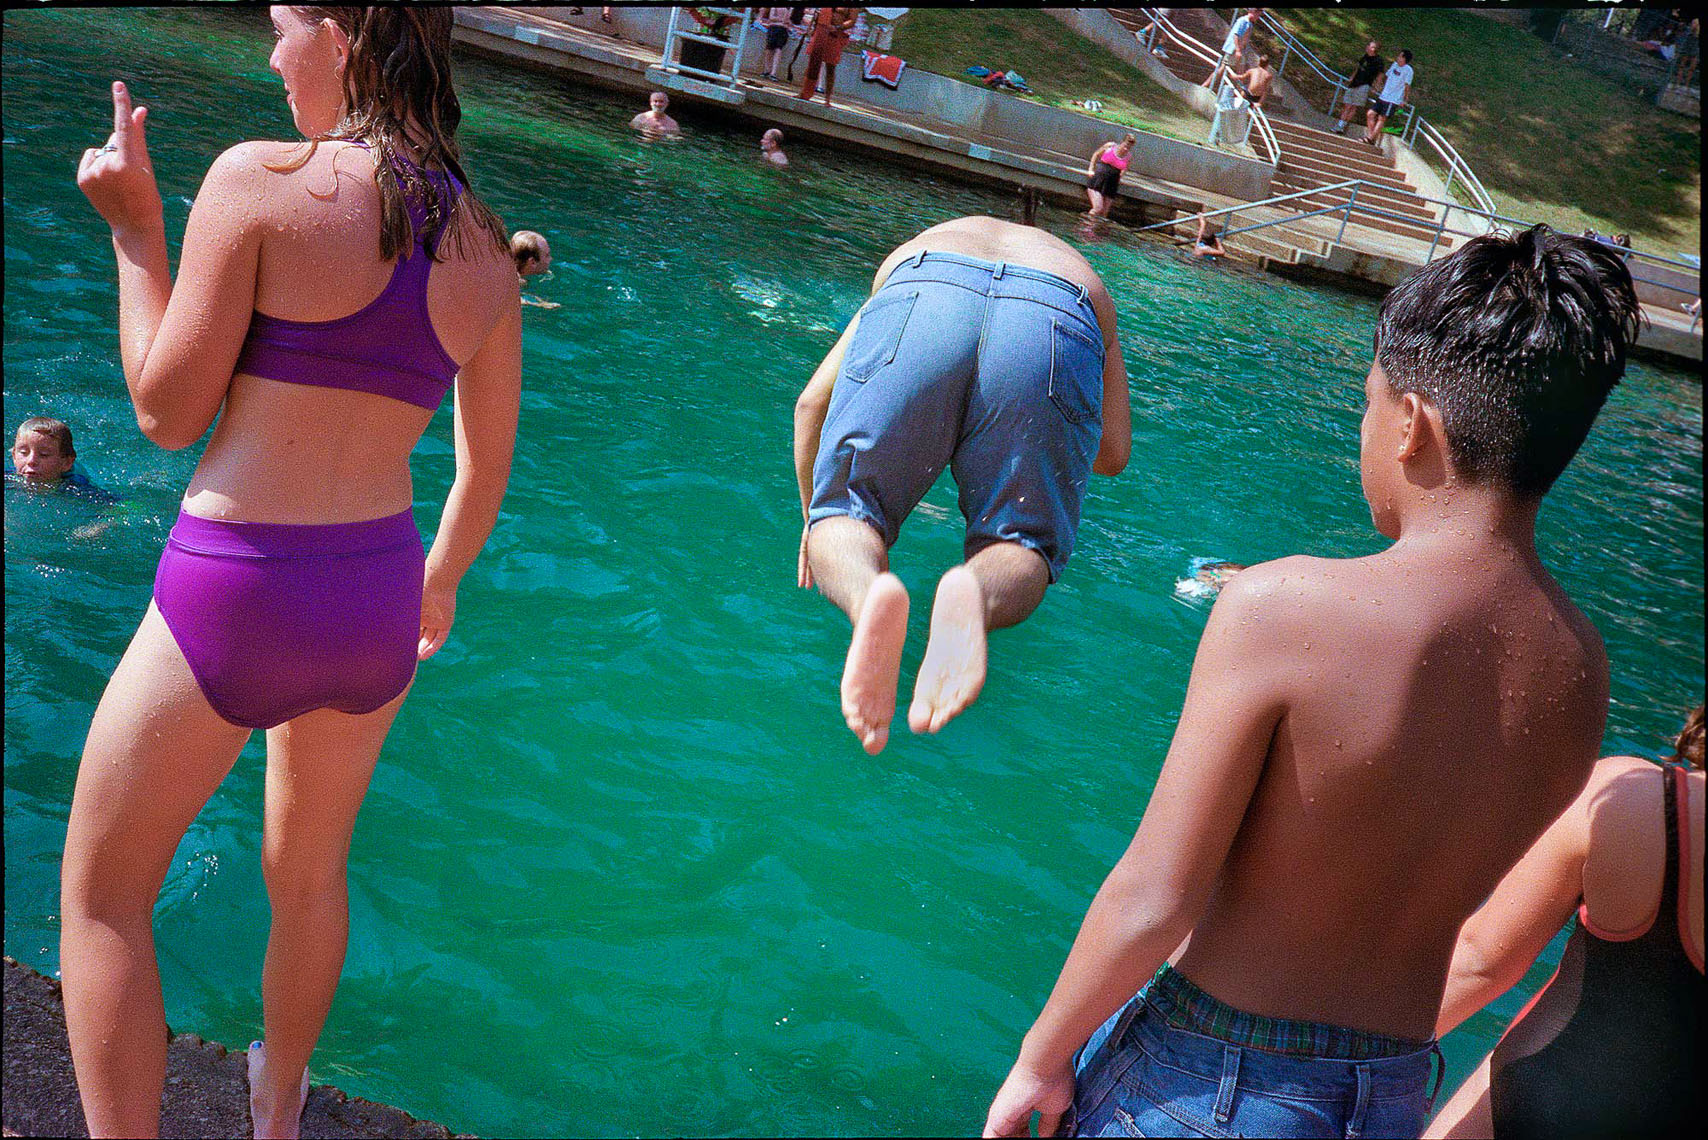 1155Barton Springs, Spring fed pool, boy cannonball dive, purple two piece